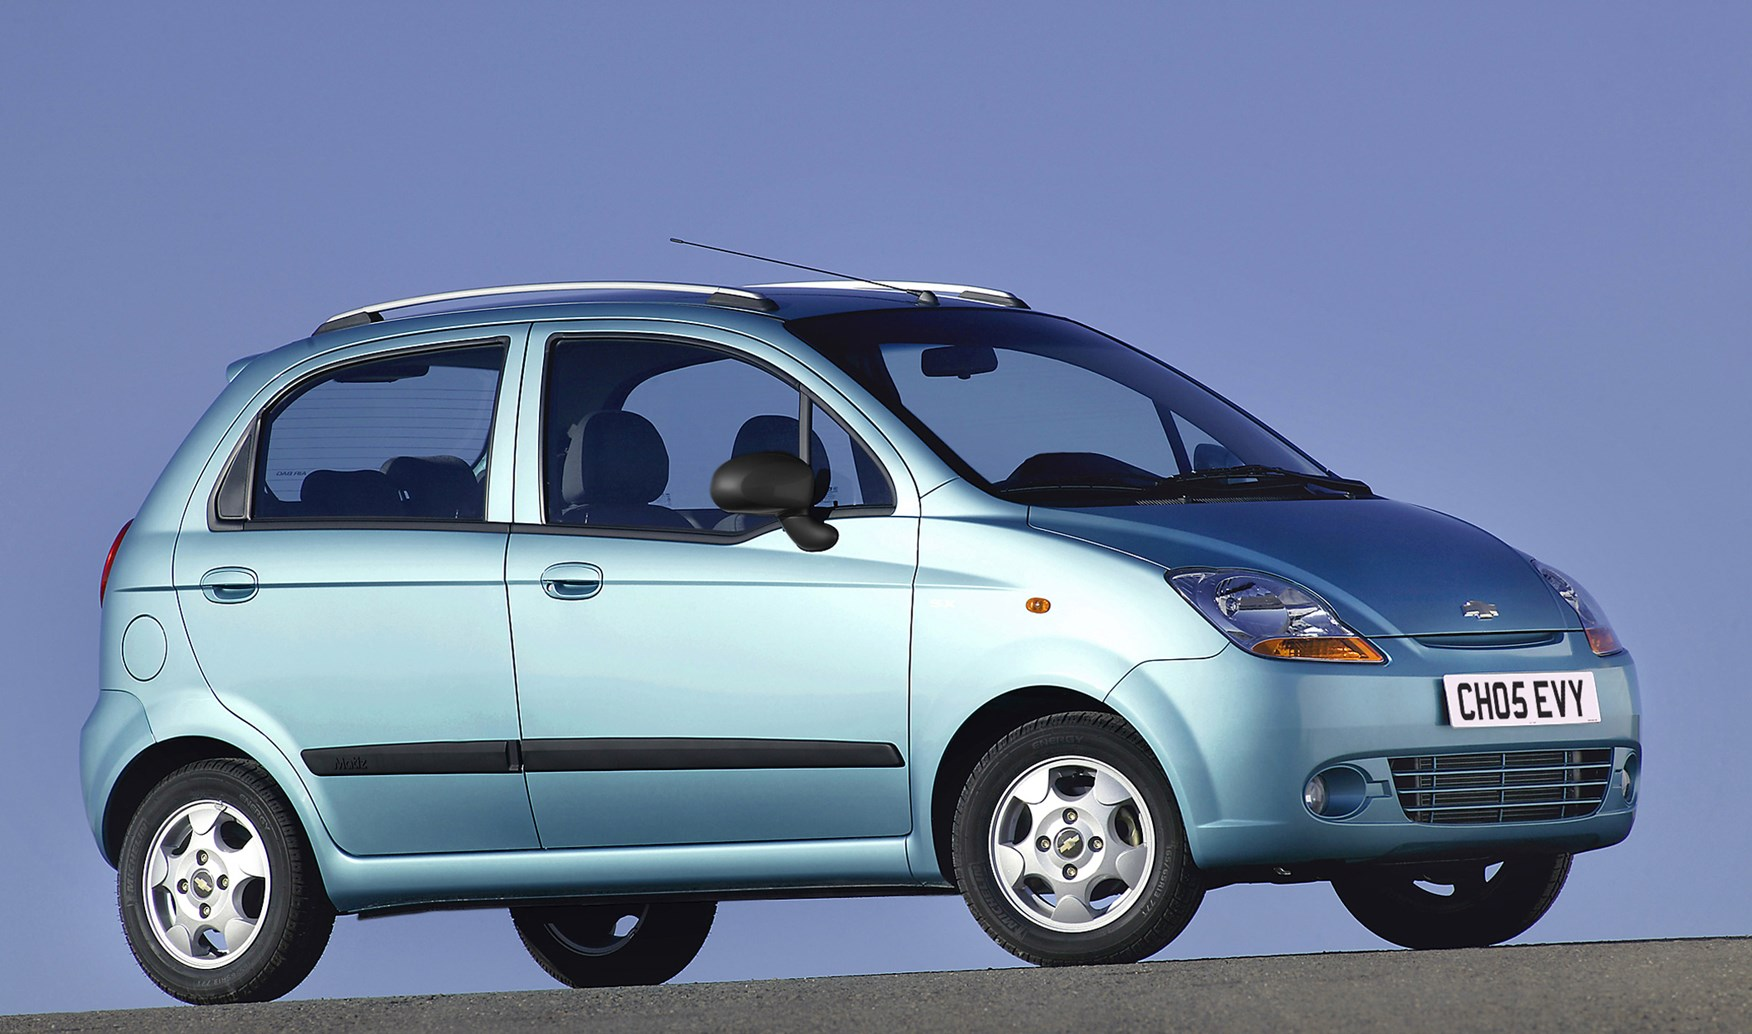 Chevrolet Matiz Hatchback 2005 2009 Features Equipment And Daewoo Central Locking Wiring Diagram Accessories Parkers